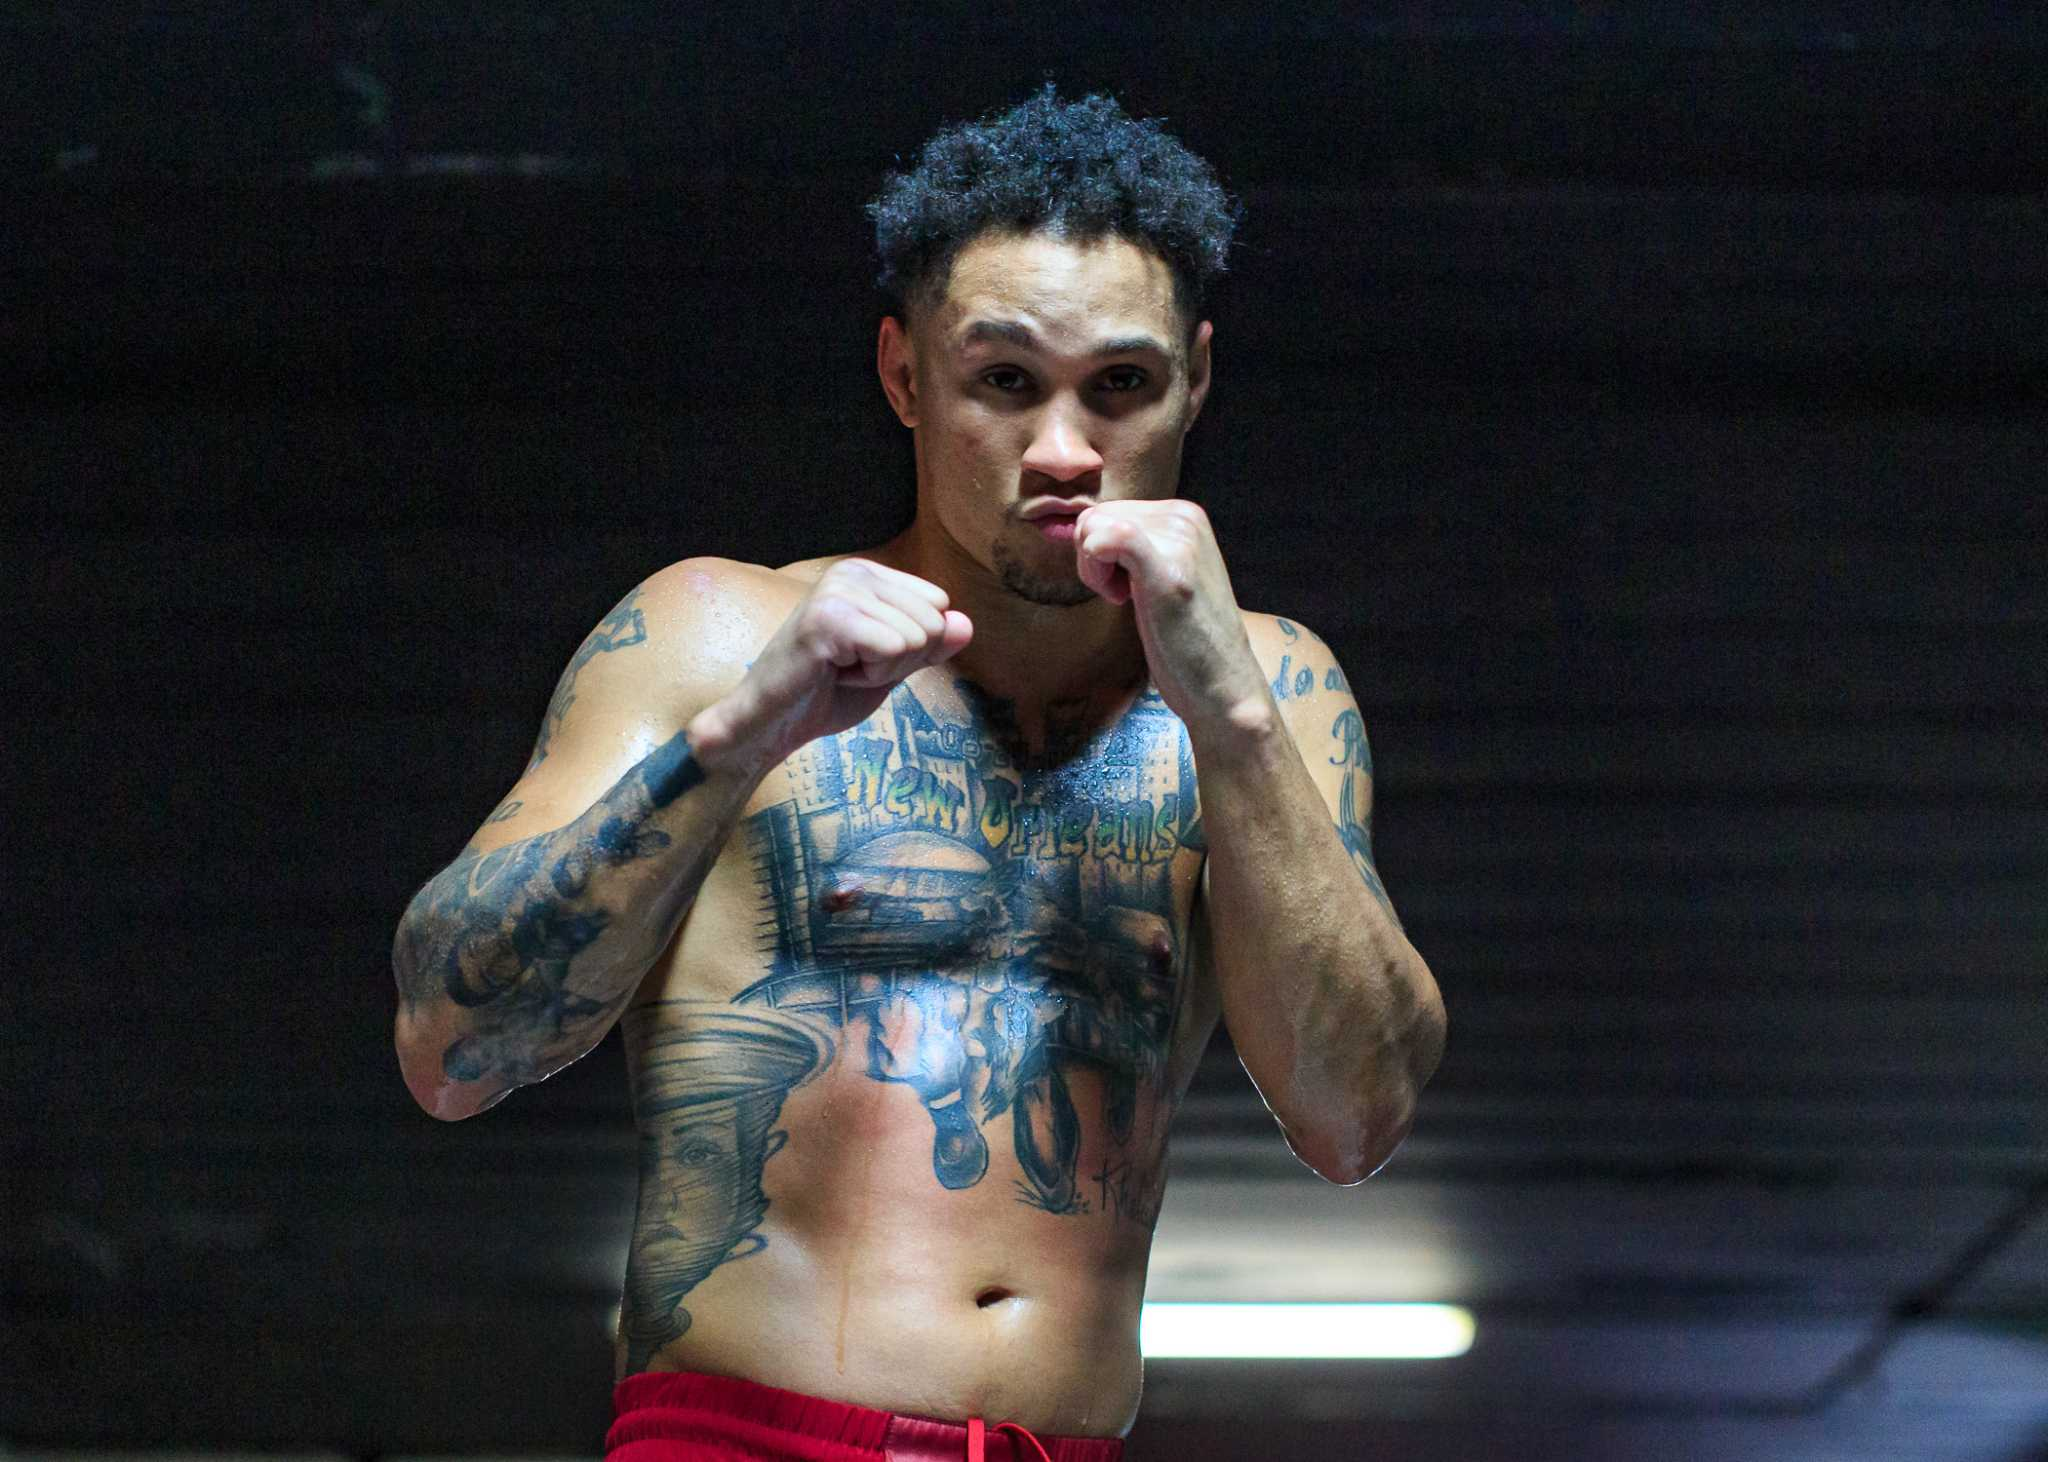 Regis Prograis boxes with New Orleans in his heart, but Houston in his hands